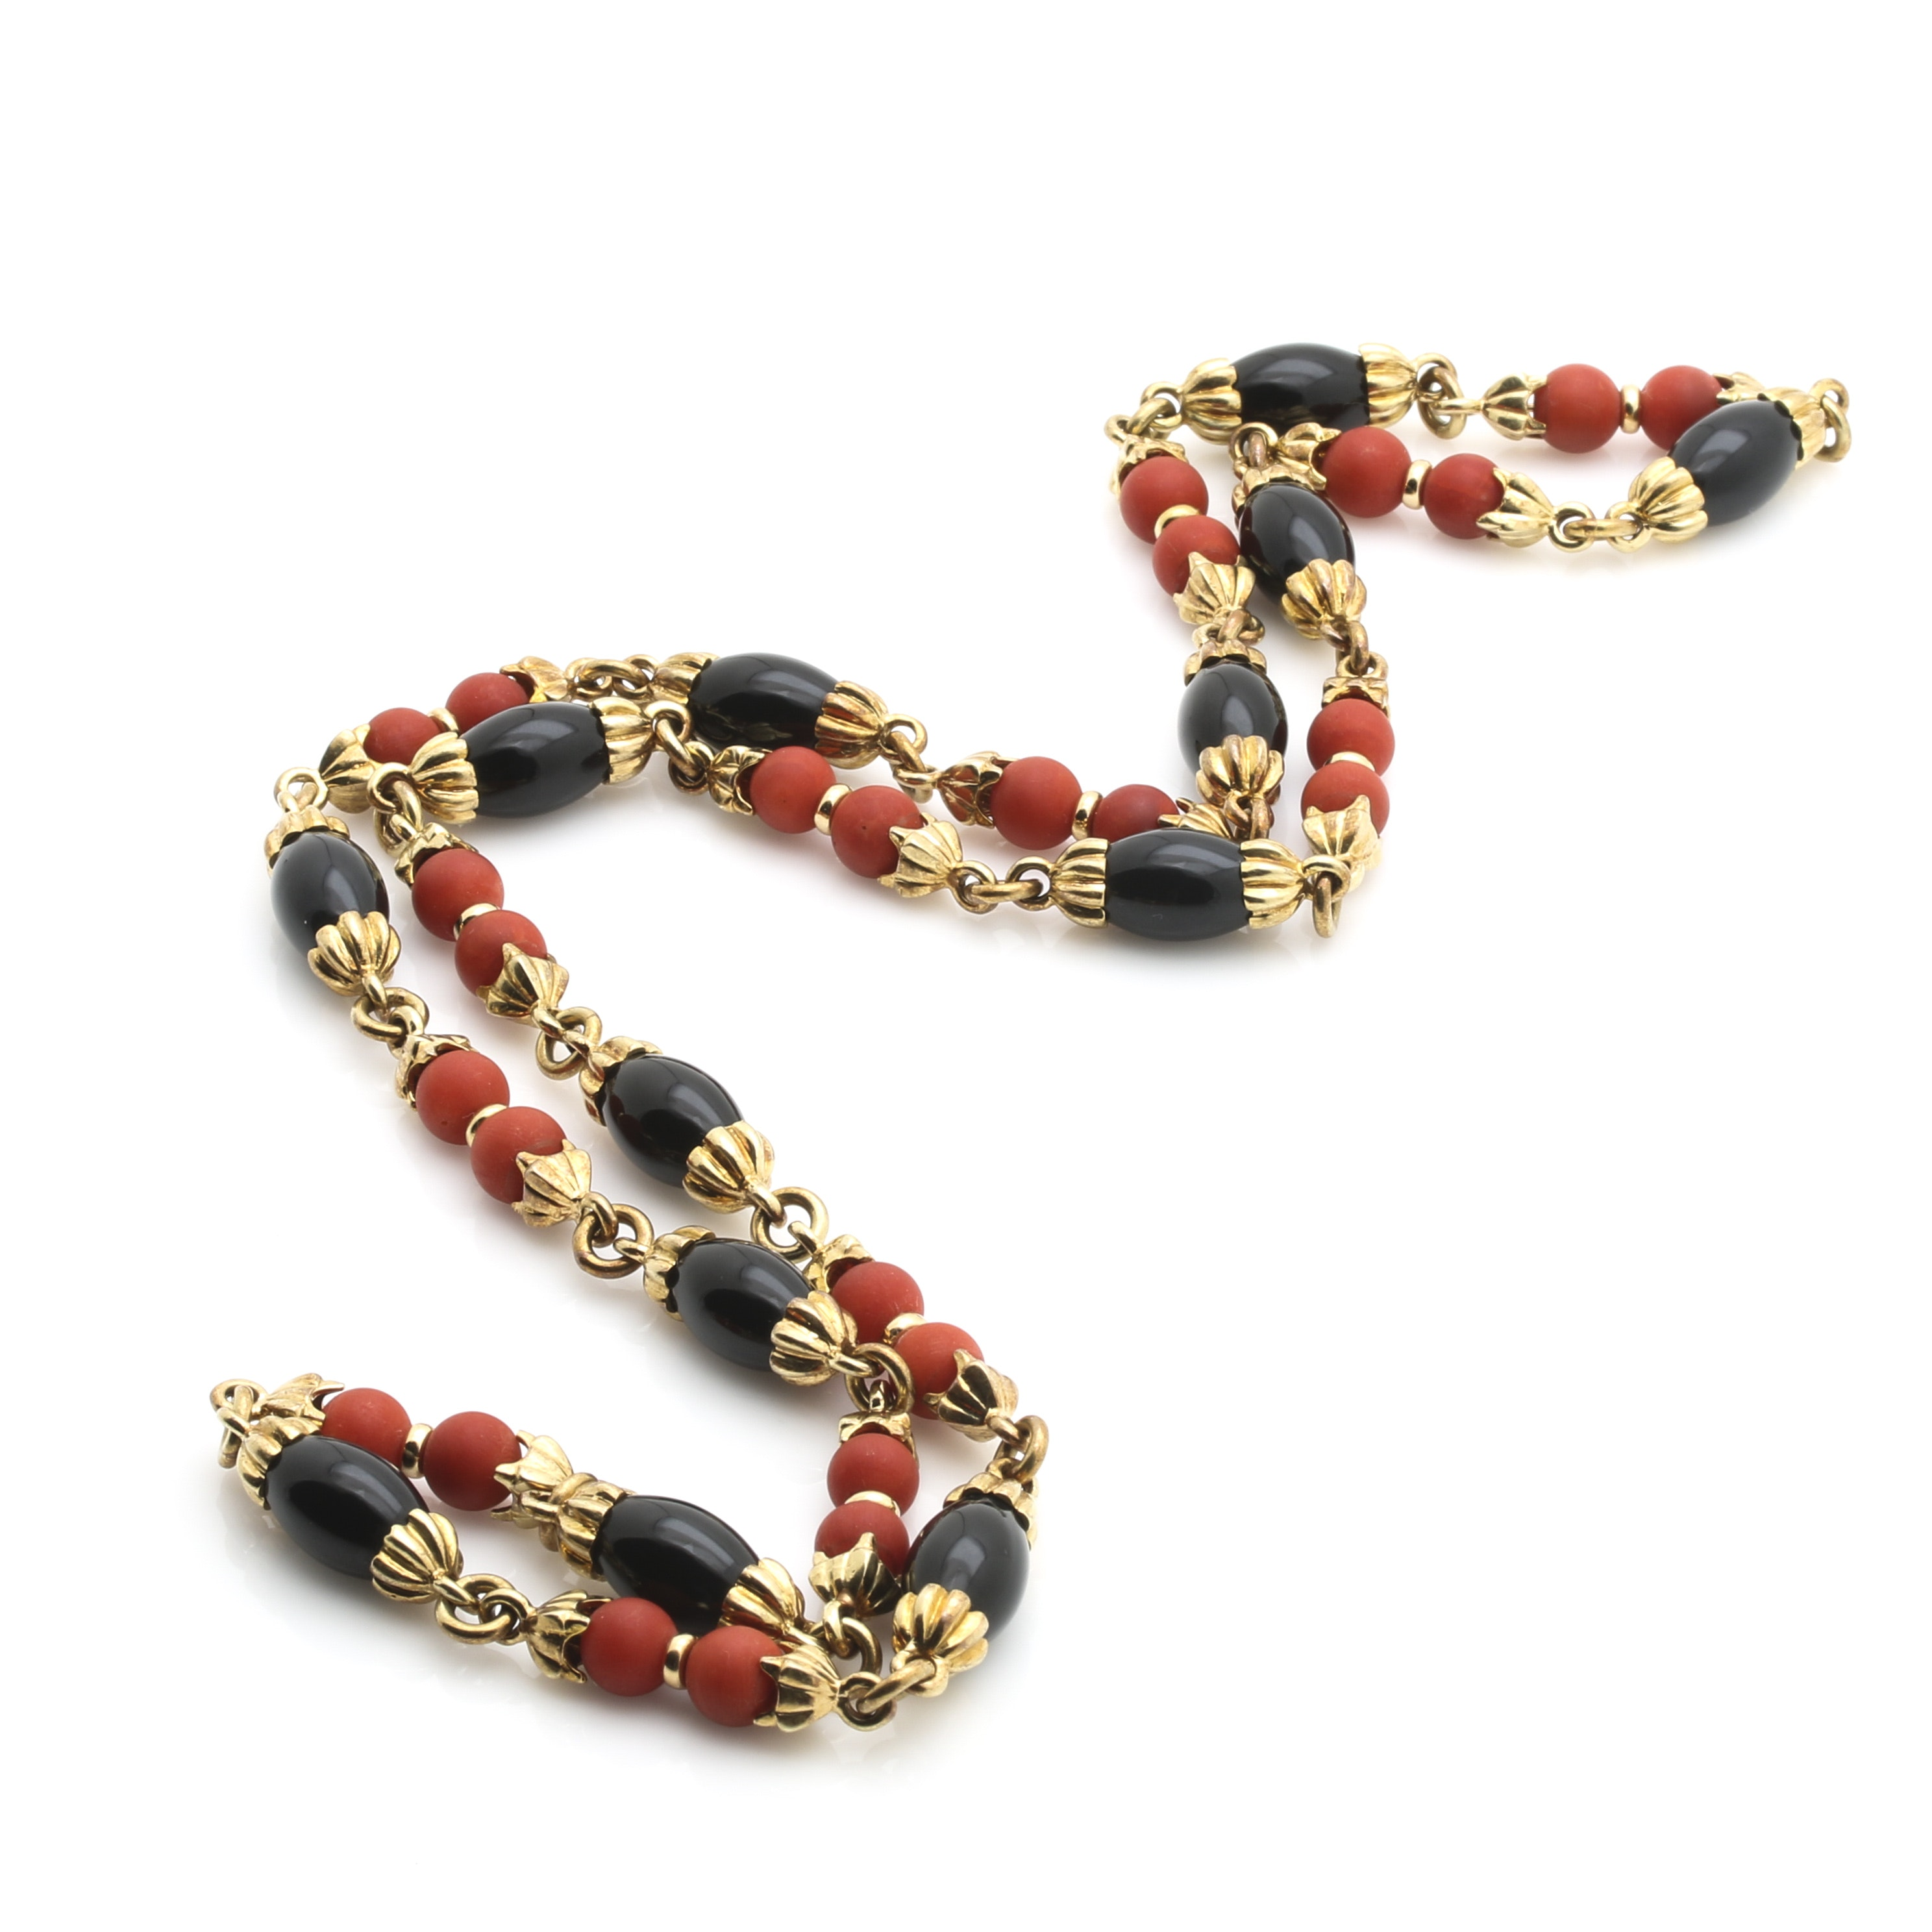 14K Yellow Gold Coral and Onyx Beaded Necklace